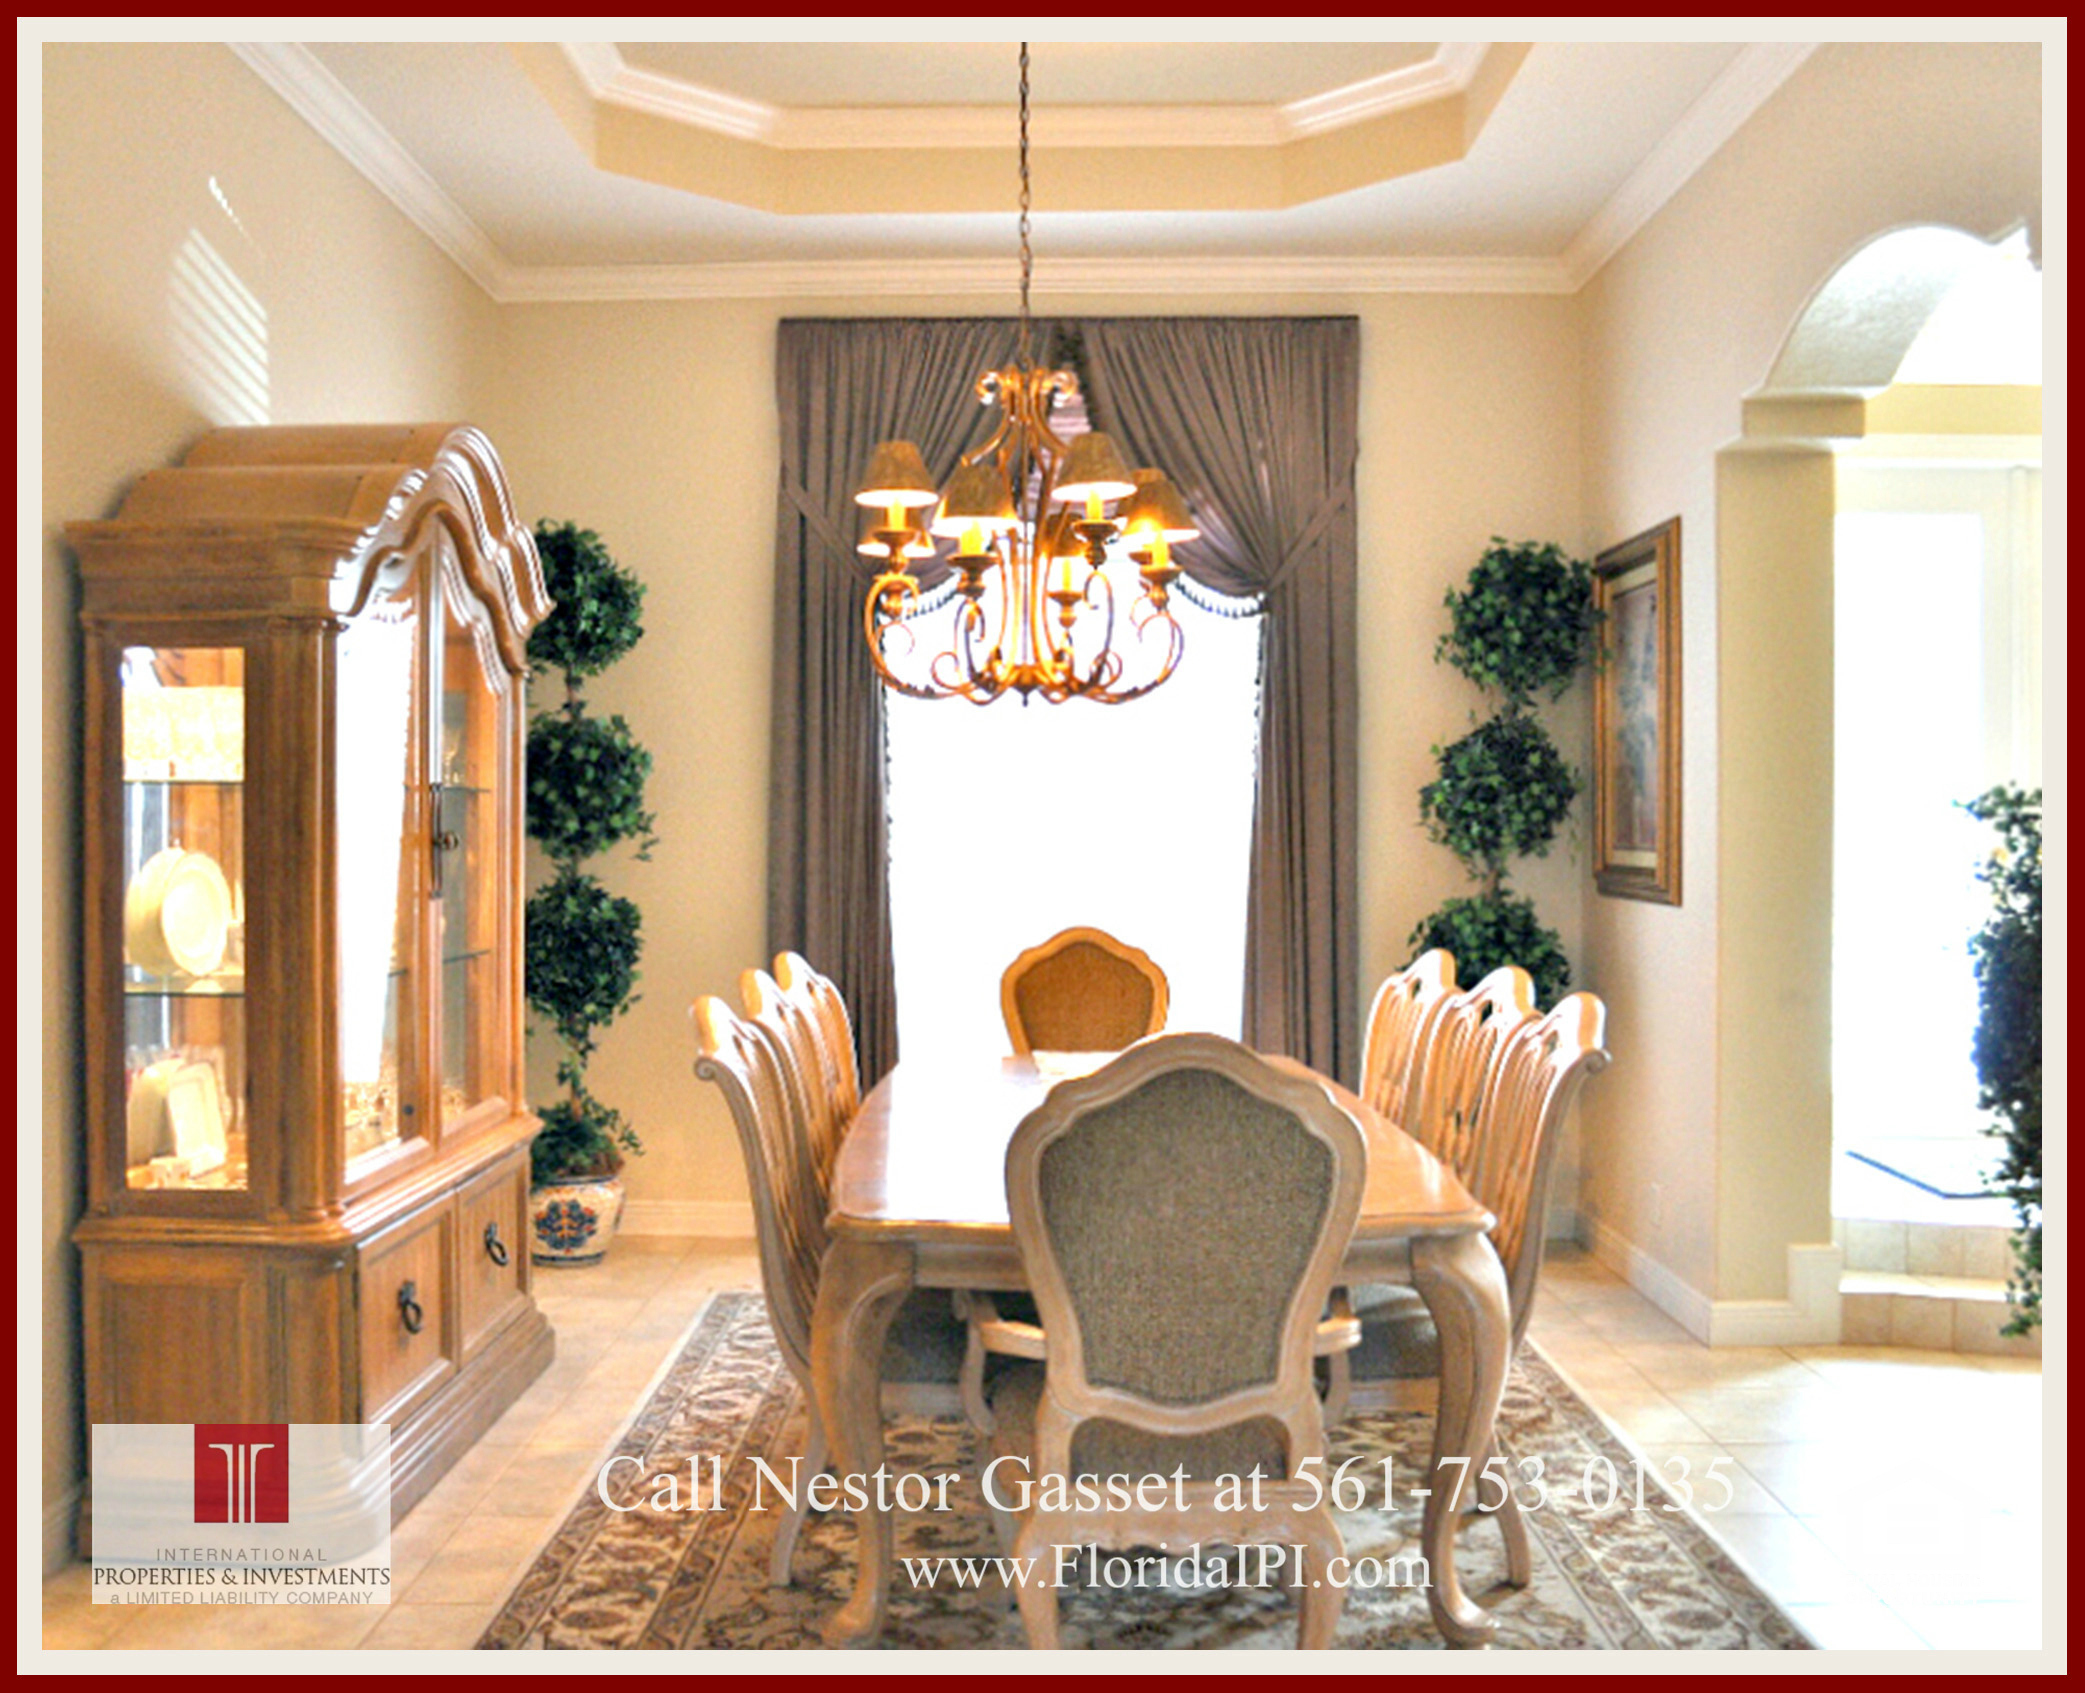 West Palm Beach Fl golf course community estate home for sale - The formal dining room of this golf course community estate home for sale in West Palm Beach FL features a tray ceiling design accented with beautiful crown molding.